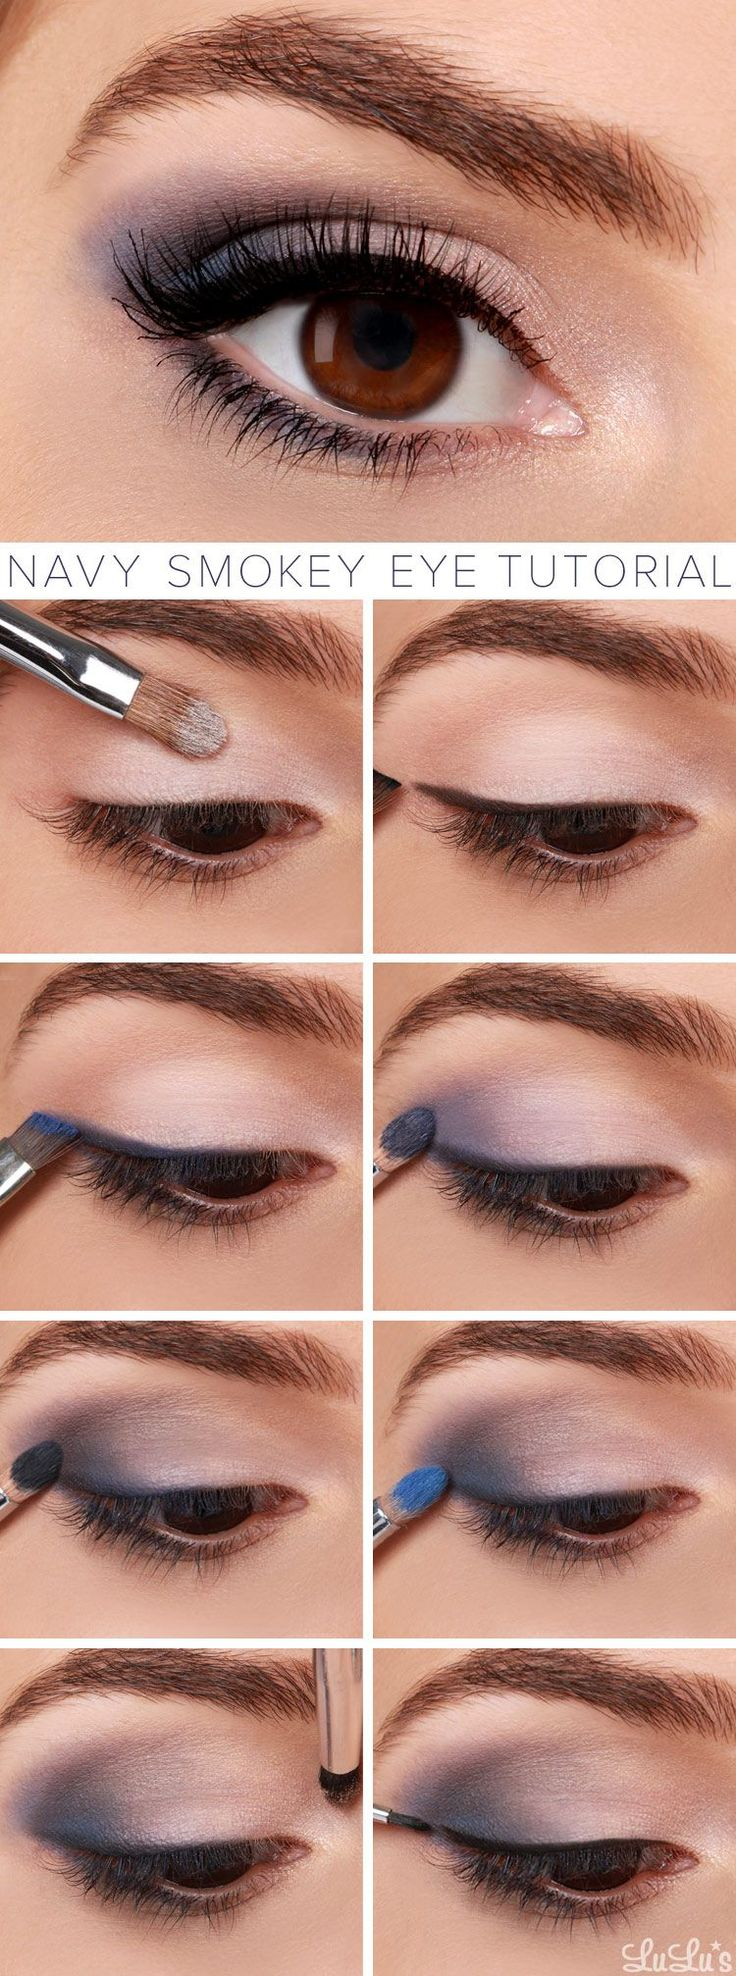 LuLu*s How-To: Navy Smokey Eye Makeup Tutorial at http://LuLus.com! NEW Real Techniques brushes makeup -$10 http://youtu.be/QBaVgDtmnlw #realtechniques #realtechniquesbrushes #makeup #makeupbrushes #makeupartist #makeupeye #eyemakeup #makeupeyes